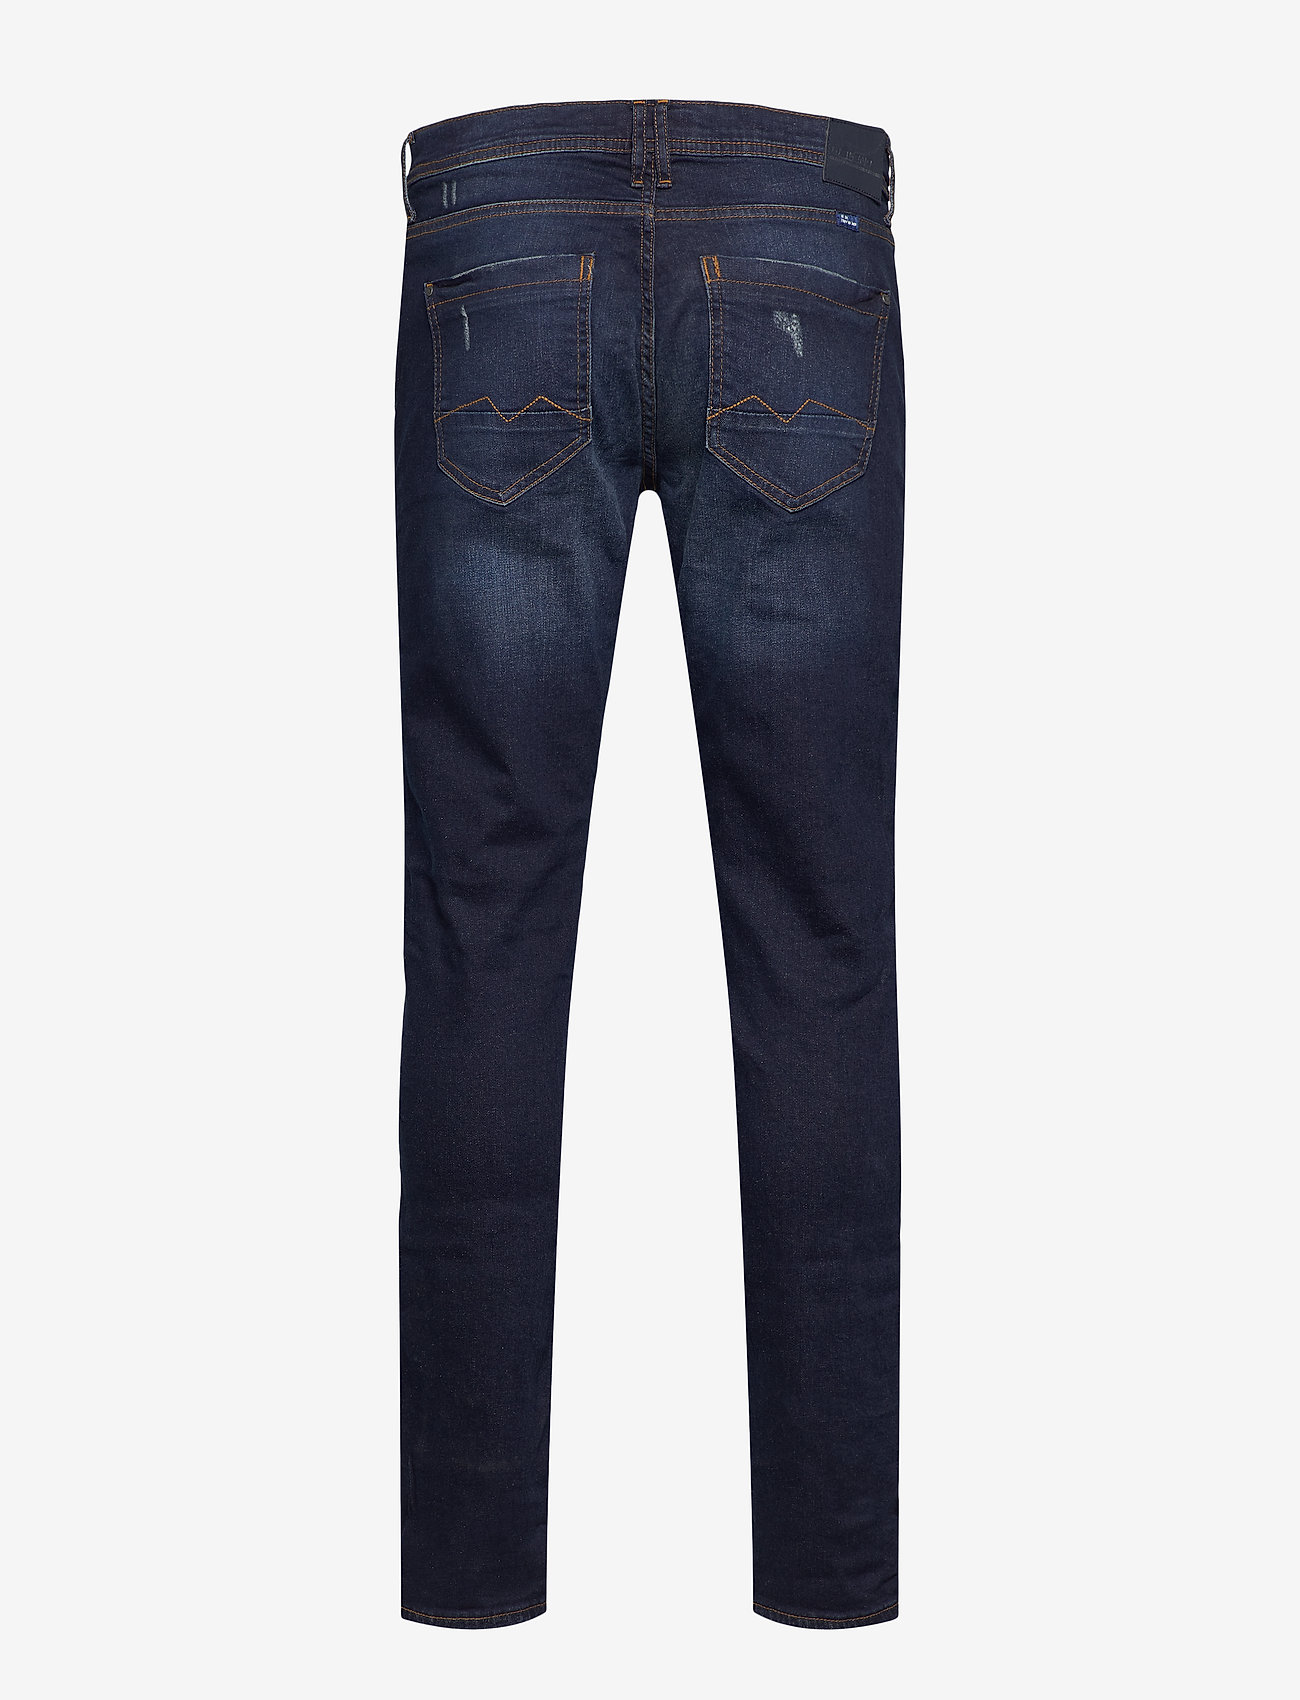 Blend - Jet fit - Scratches - regular jeans - denim dark blue - 1